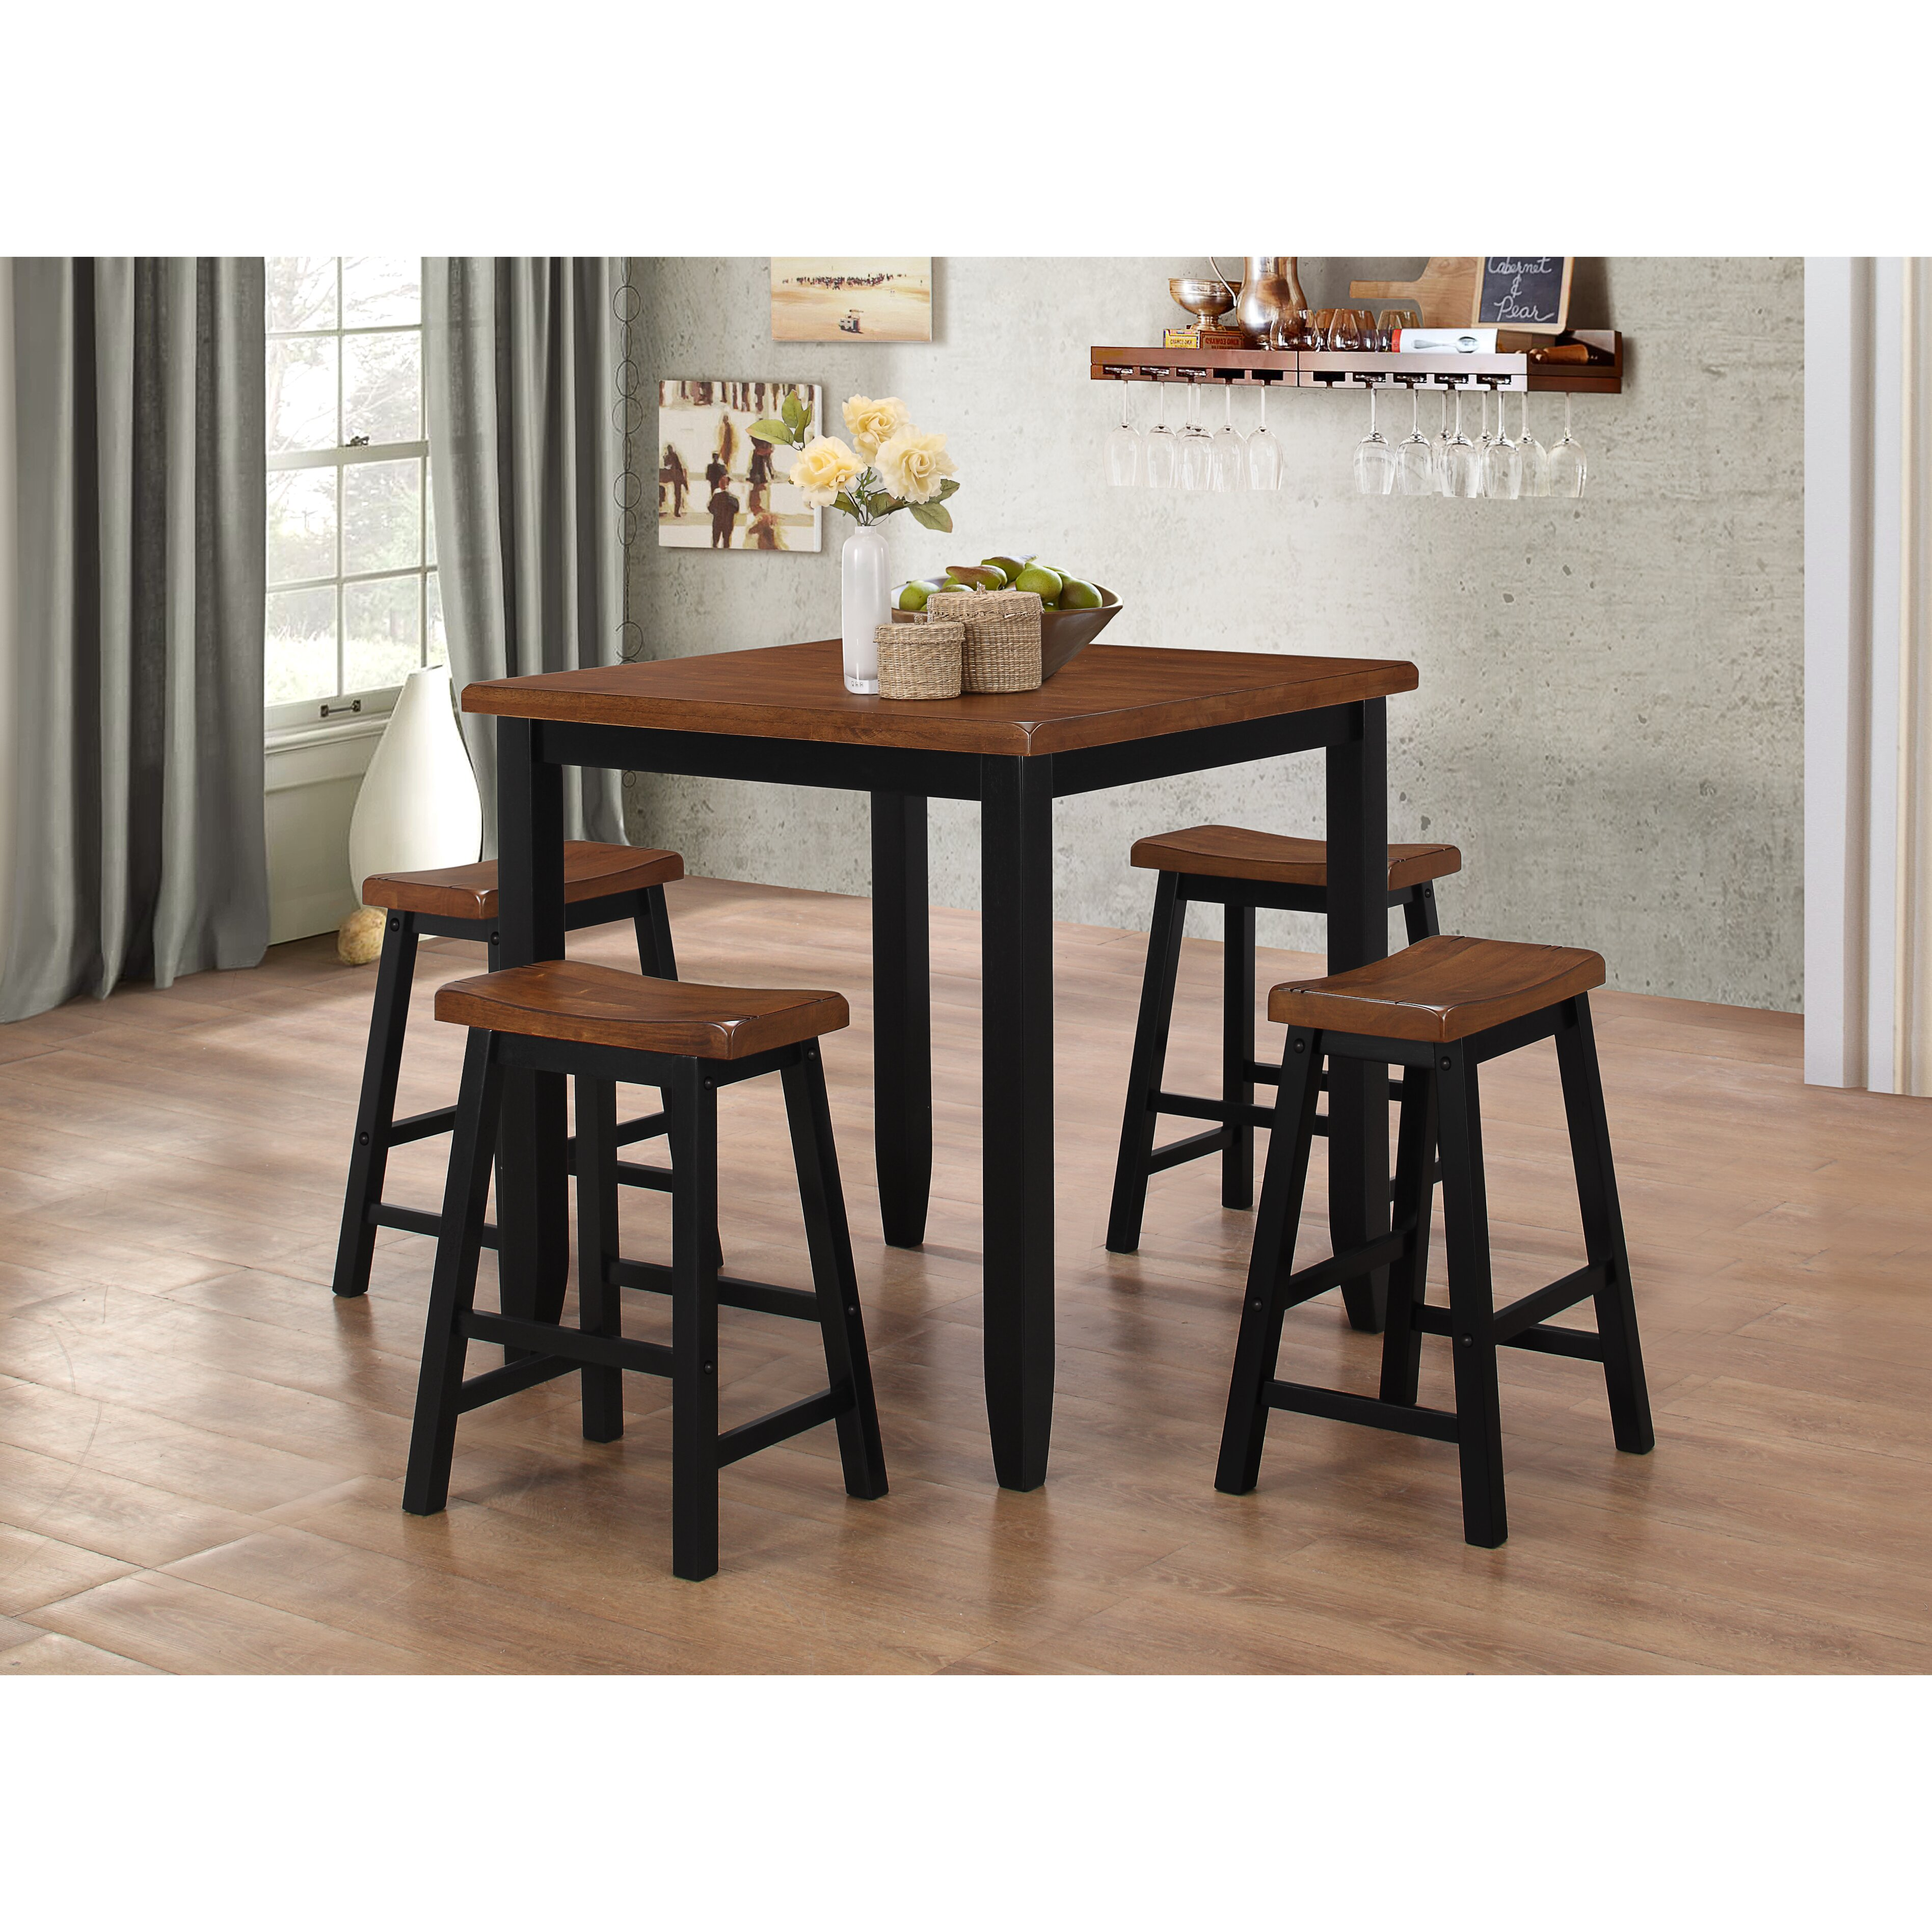 Counter Height Bistro Table Set Darby Home Co Simmons Casegoods Ruggerio 5 Piece Counter Height